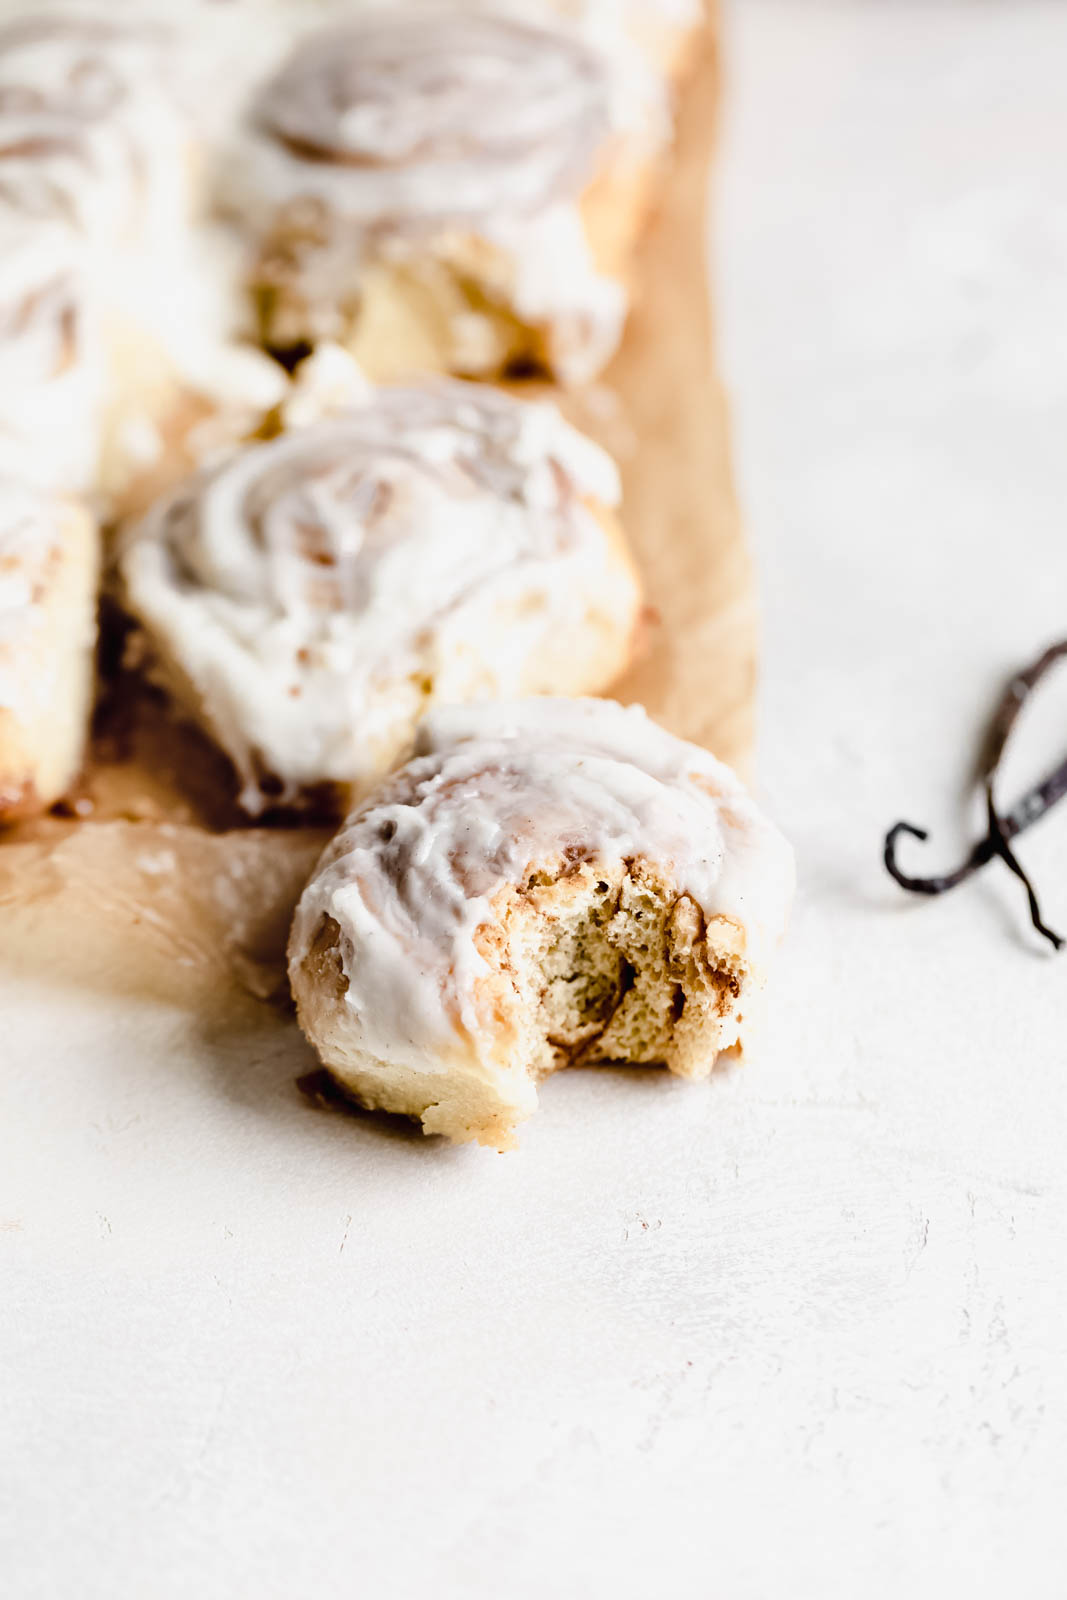 The softest, most perfect Cinnamon Buns I've ever had, made with vanilla beans and a cream cheese frosting. Well worth the effort!!!